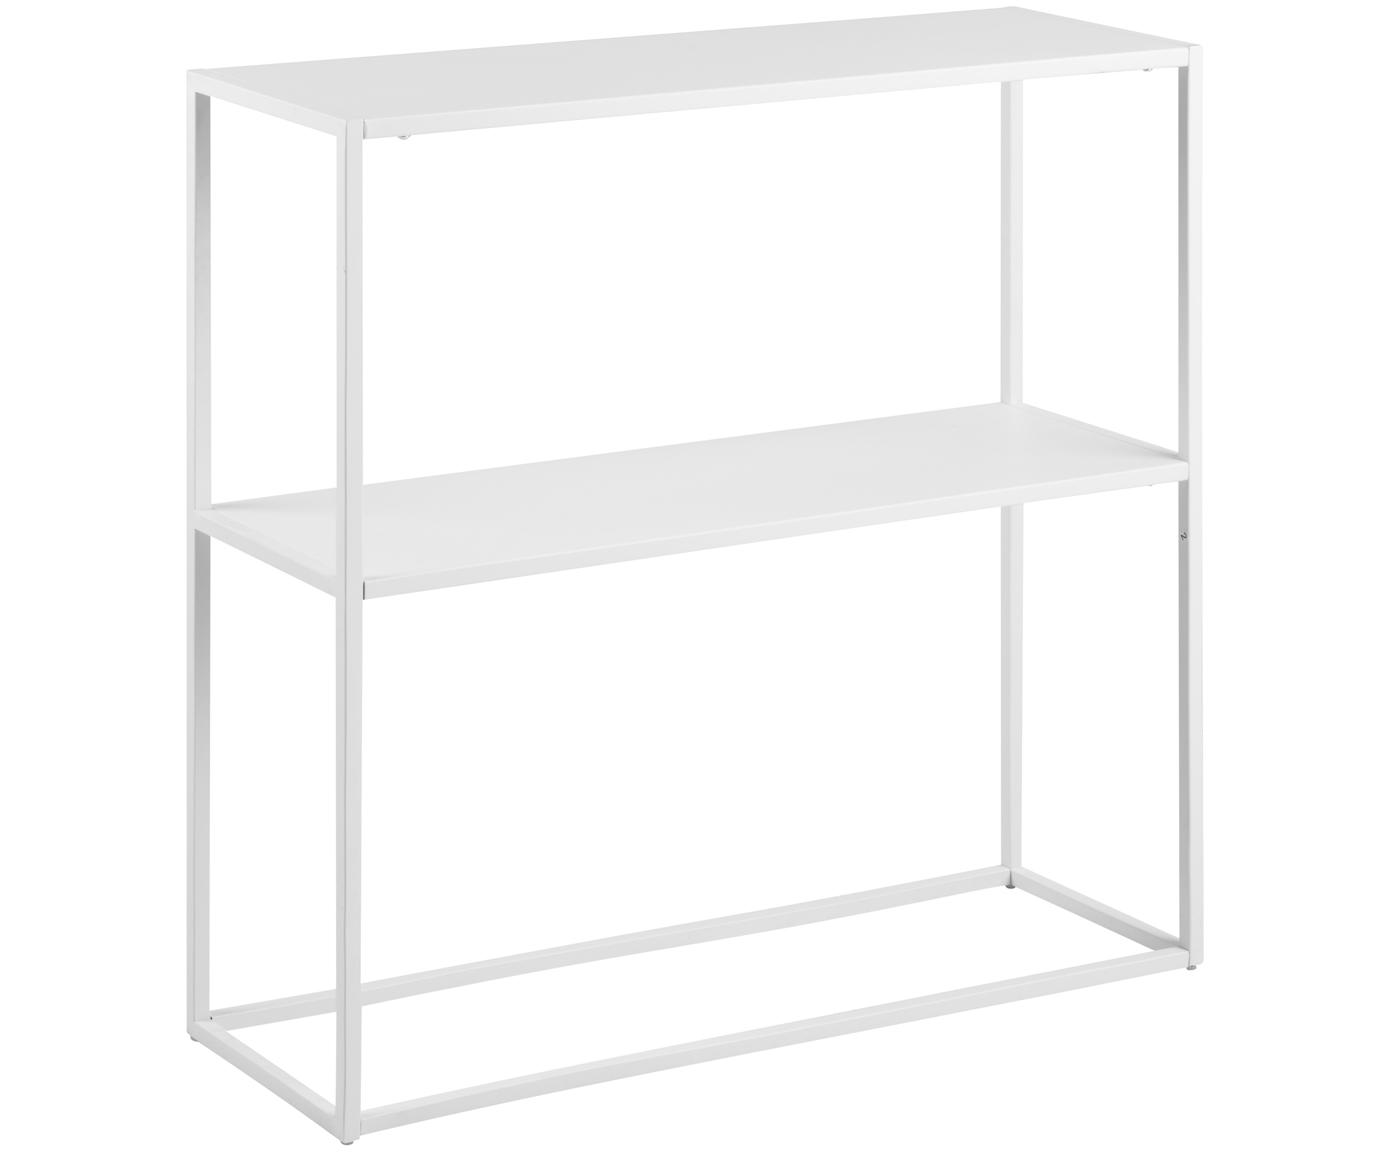 Metall-Regal Newton in Weiss, Metall, pulverbeschichtet, Weiss, 80 x 80 cm